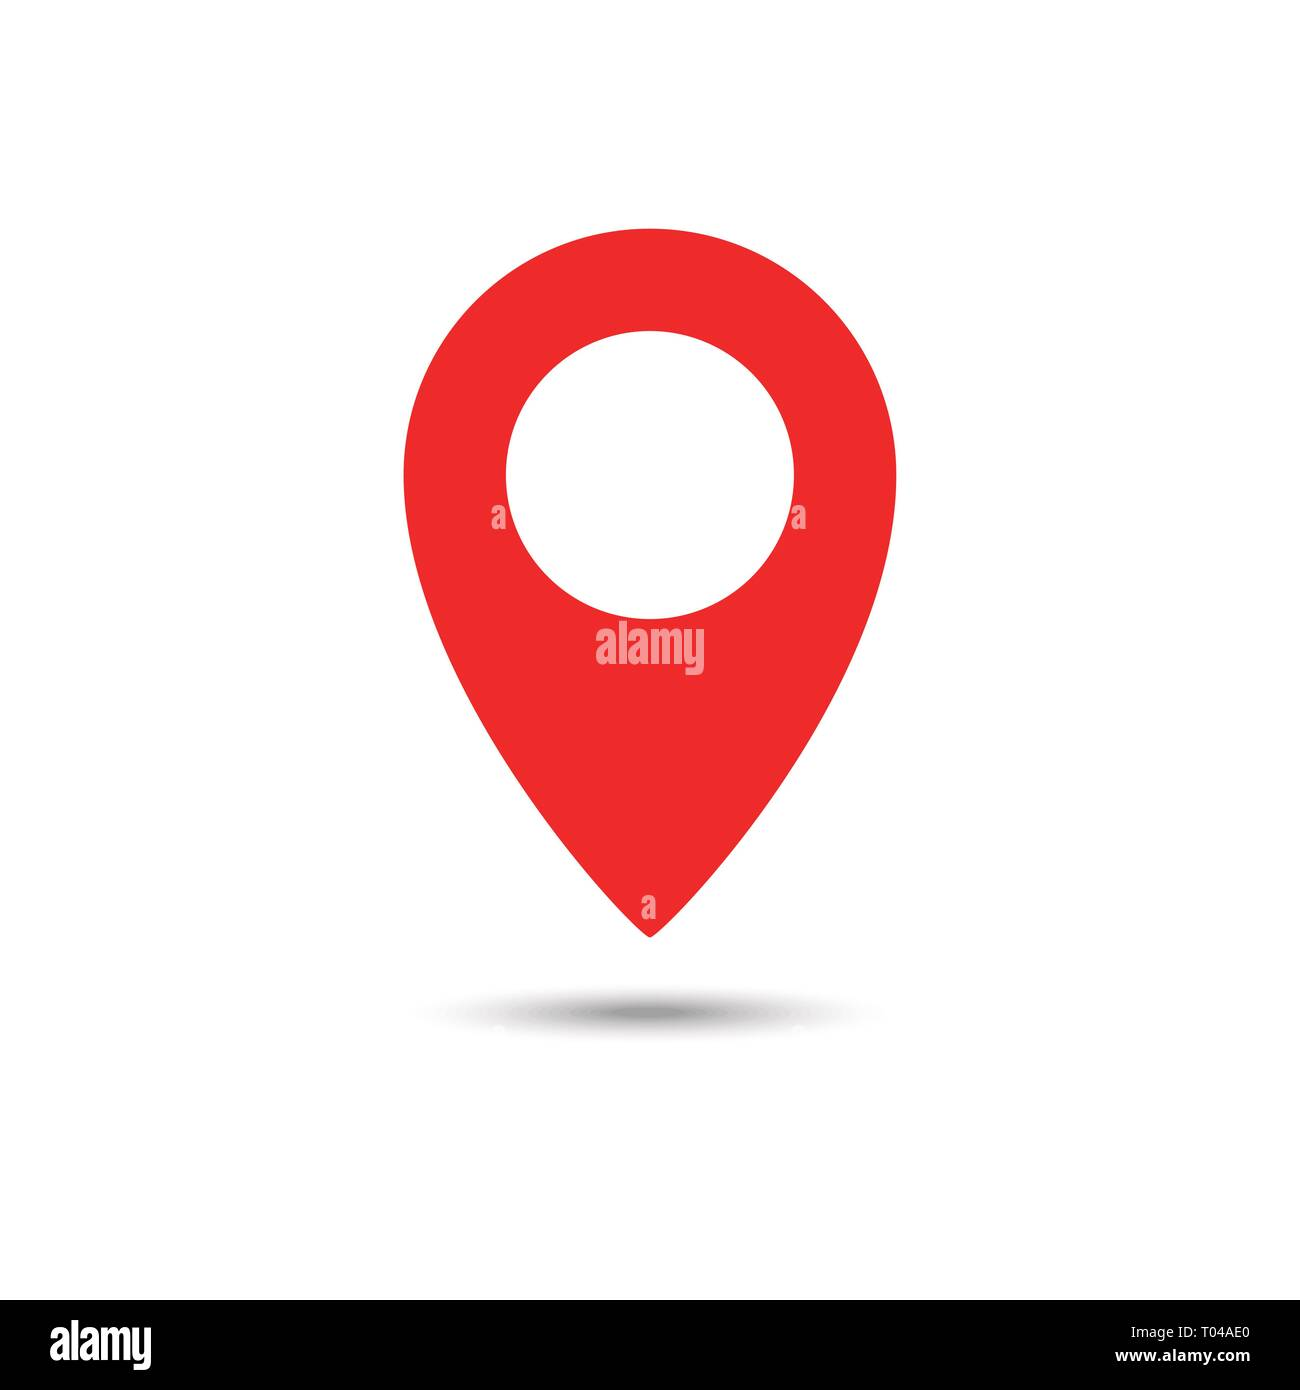 Red maps pin  Location map icon  Location pin  Pin icon